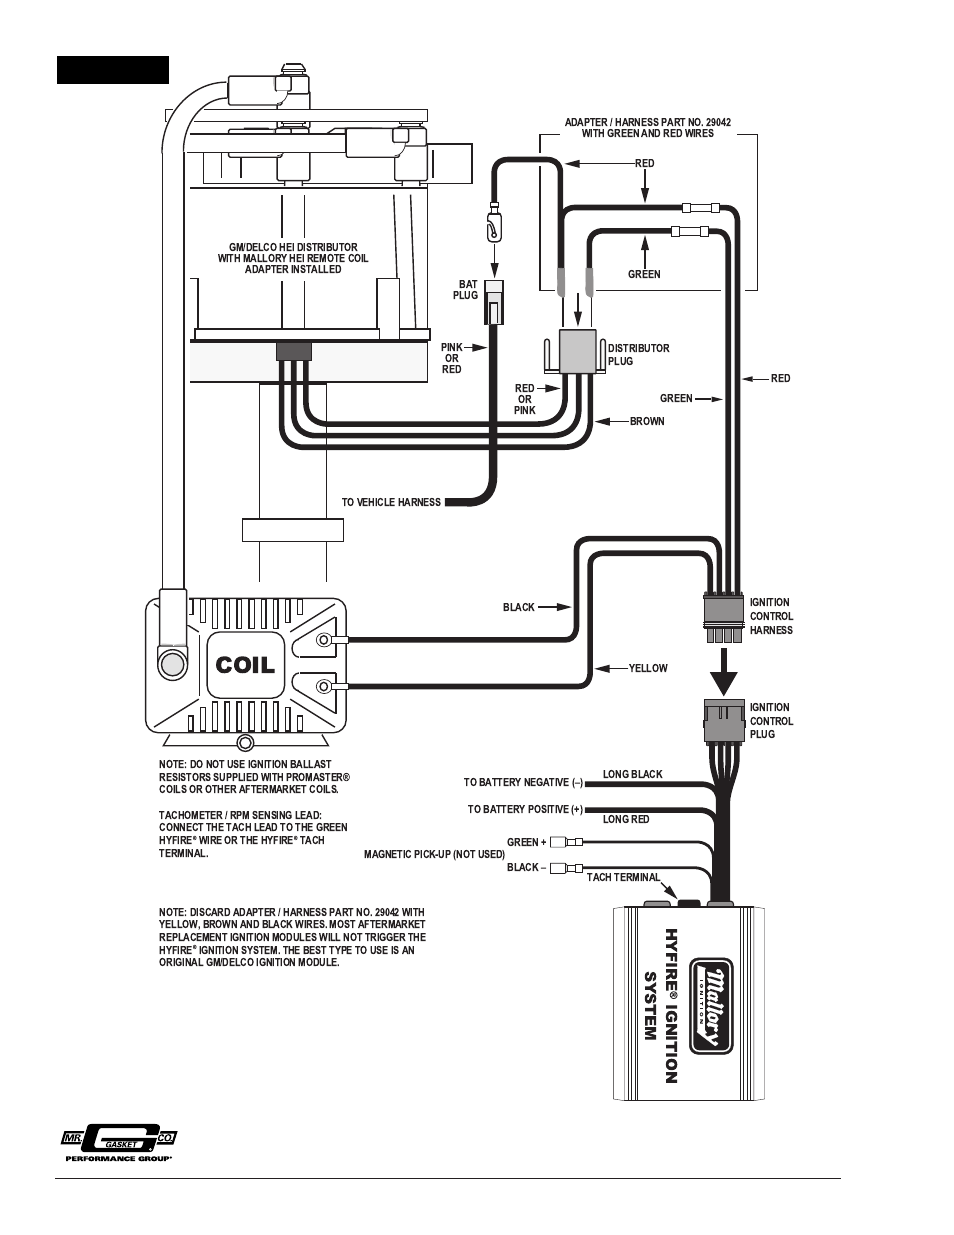 hyfire wiring diagram led circuit diagrams elsavadorla